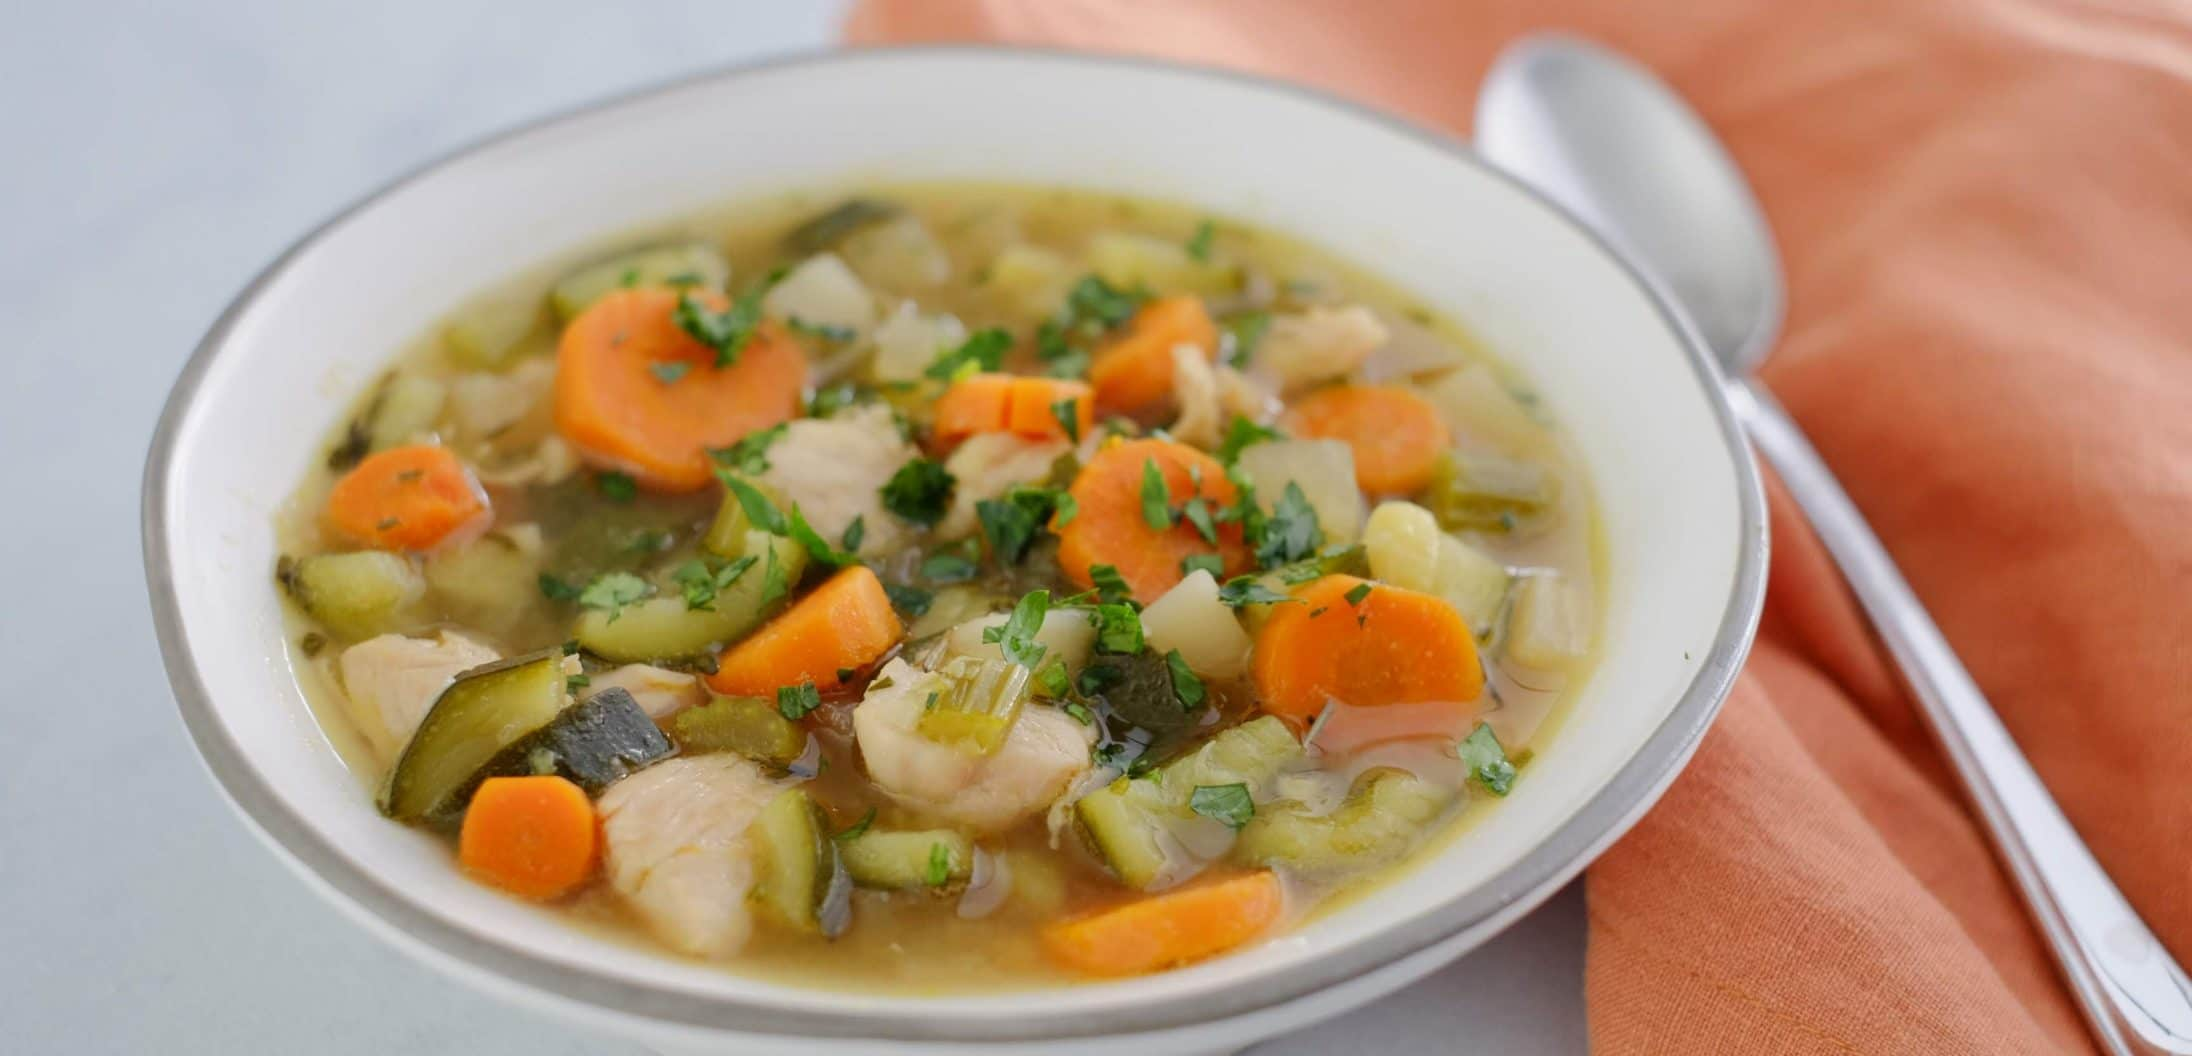 chicken vegetable soup in white bowl with orange napkin and spoon